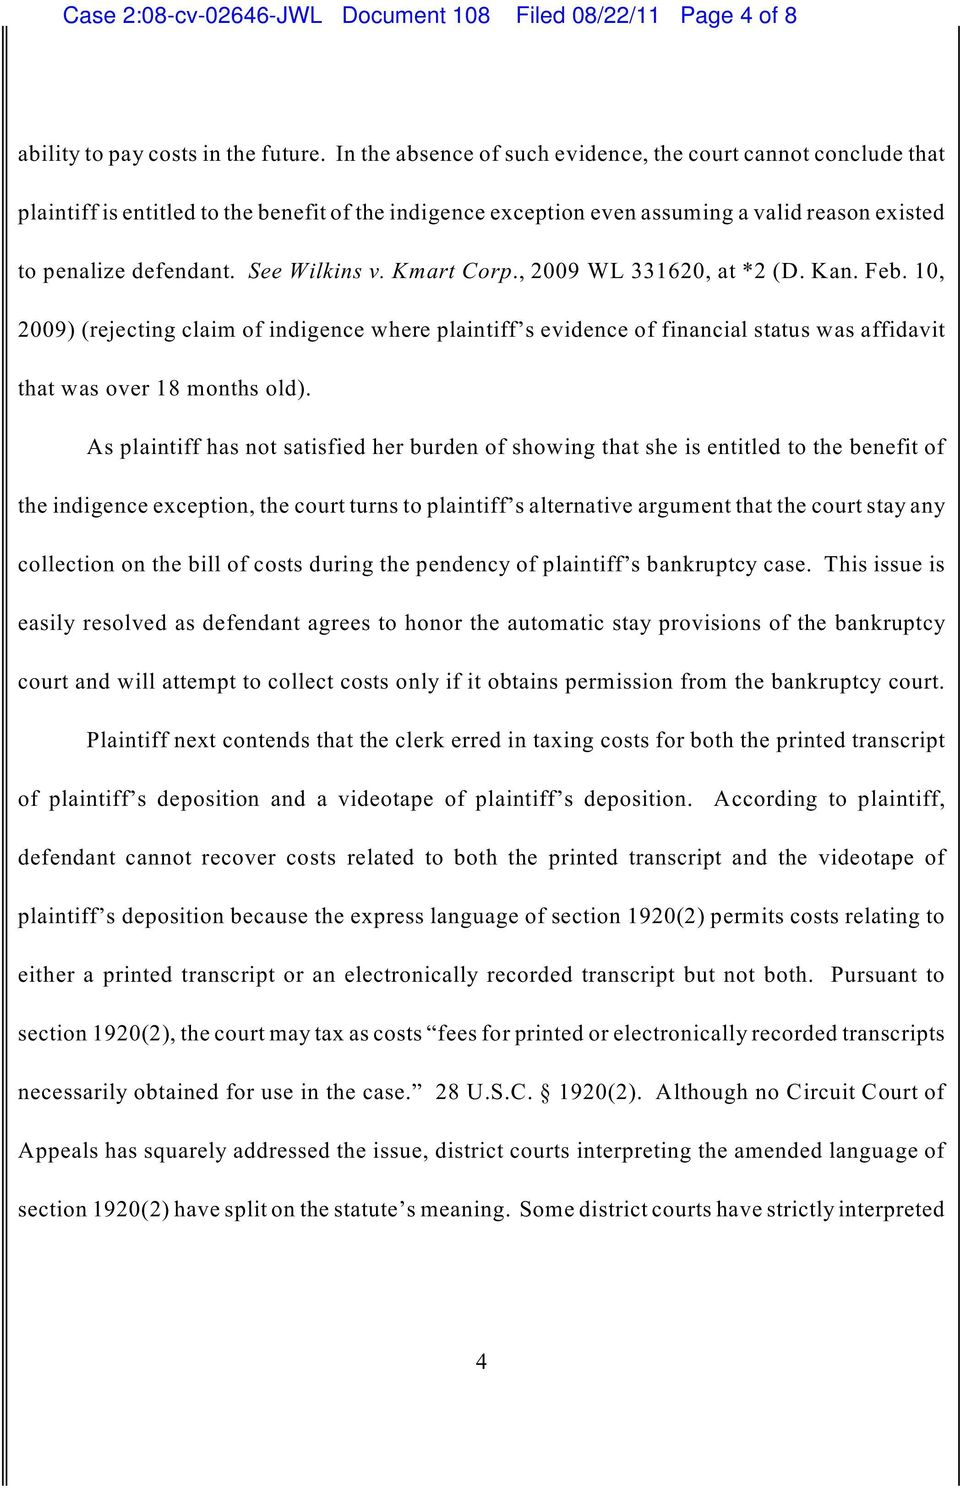 See Wilkins v. Kmart Corp., 2009 WL 331620, at *2 (D. Kan. Feb. 10, 2009) (rejecting claim of indigence where plaintiff s evidence of financial status was affidavit that was over 18 months old).